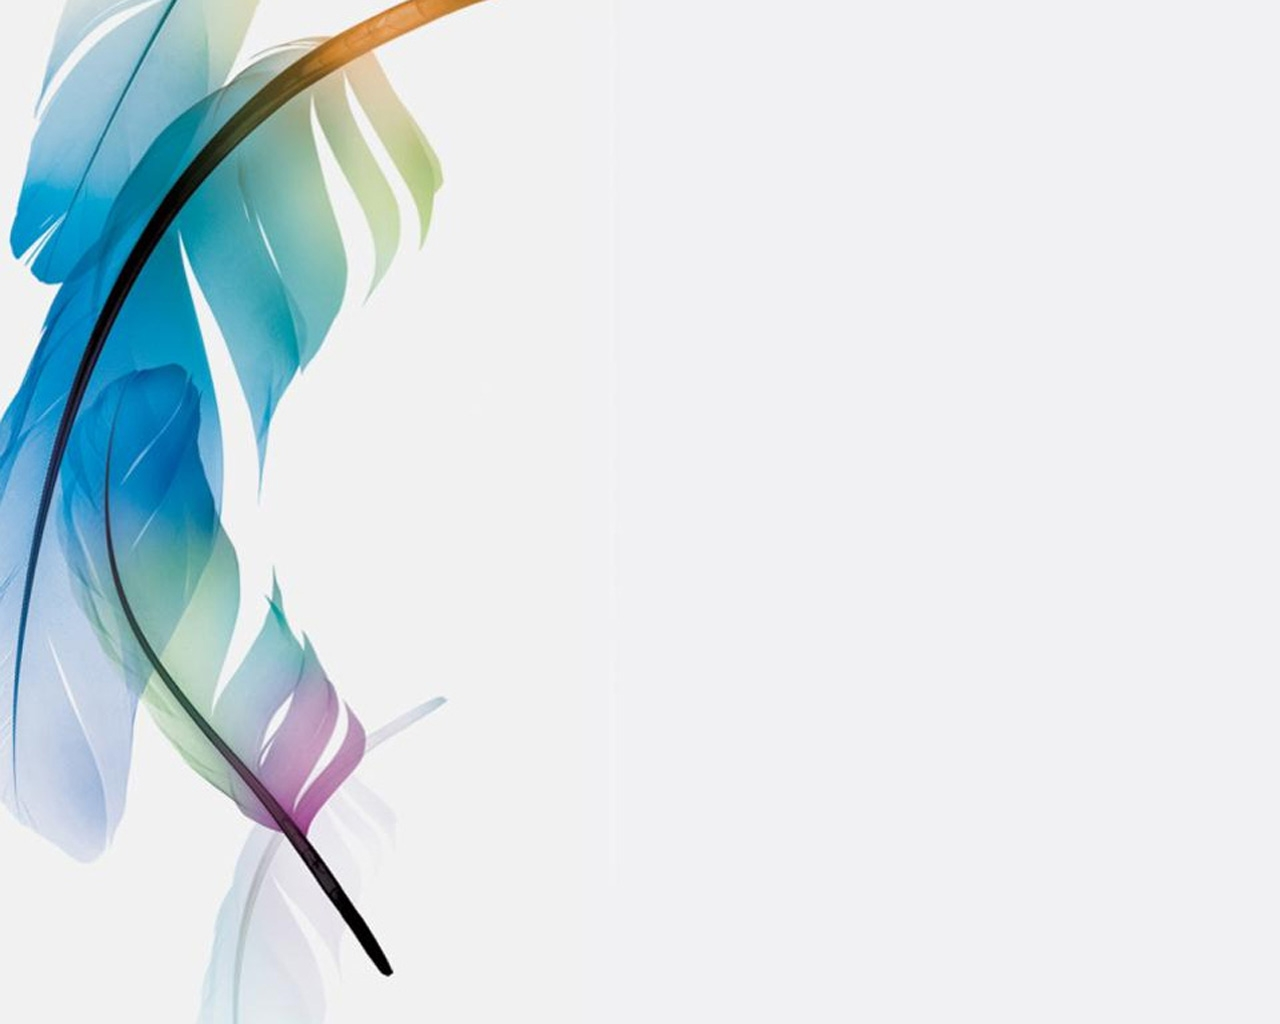 Technology PPT Templates Technology Quality Backgrounds for 1280x1024